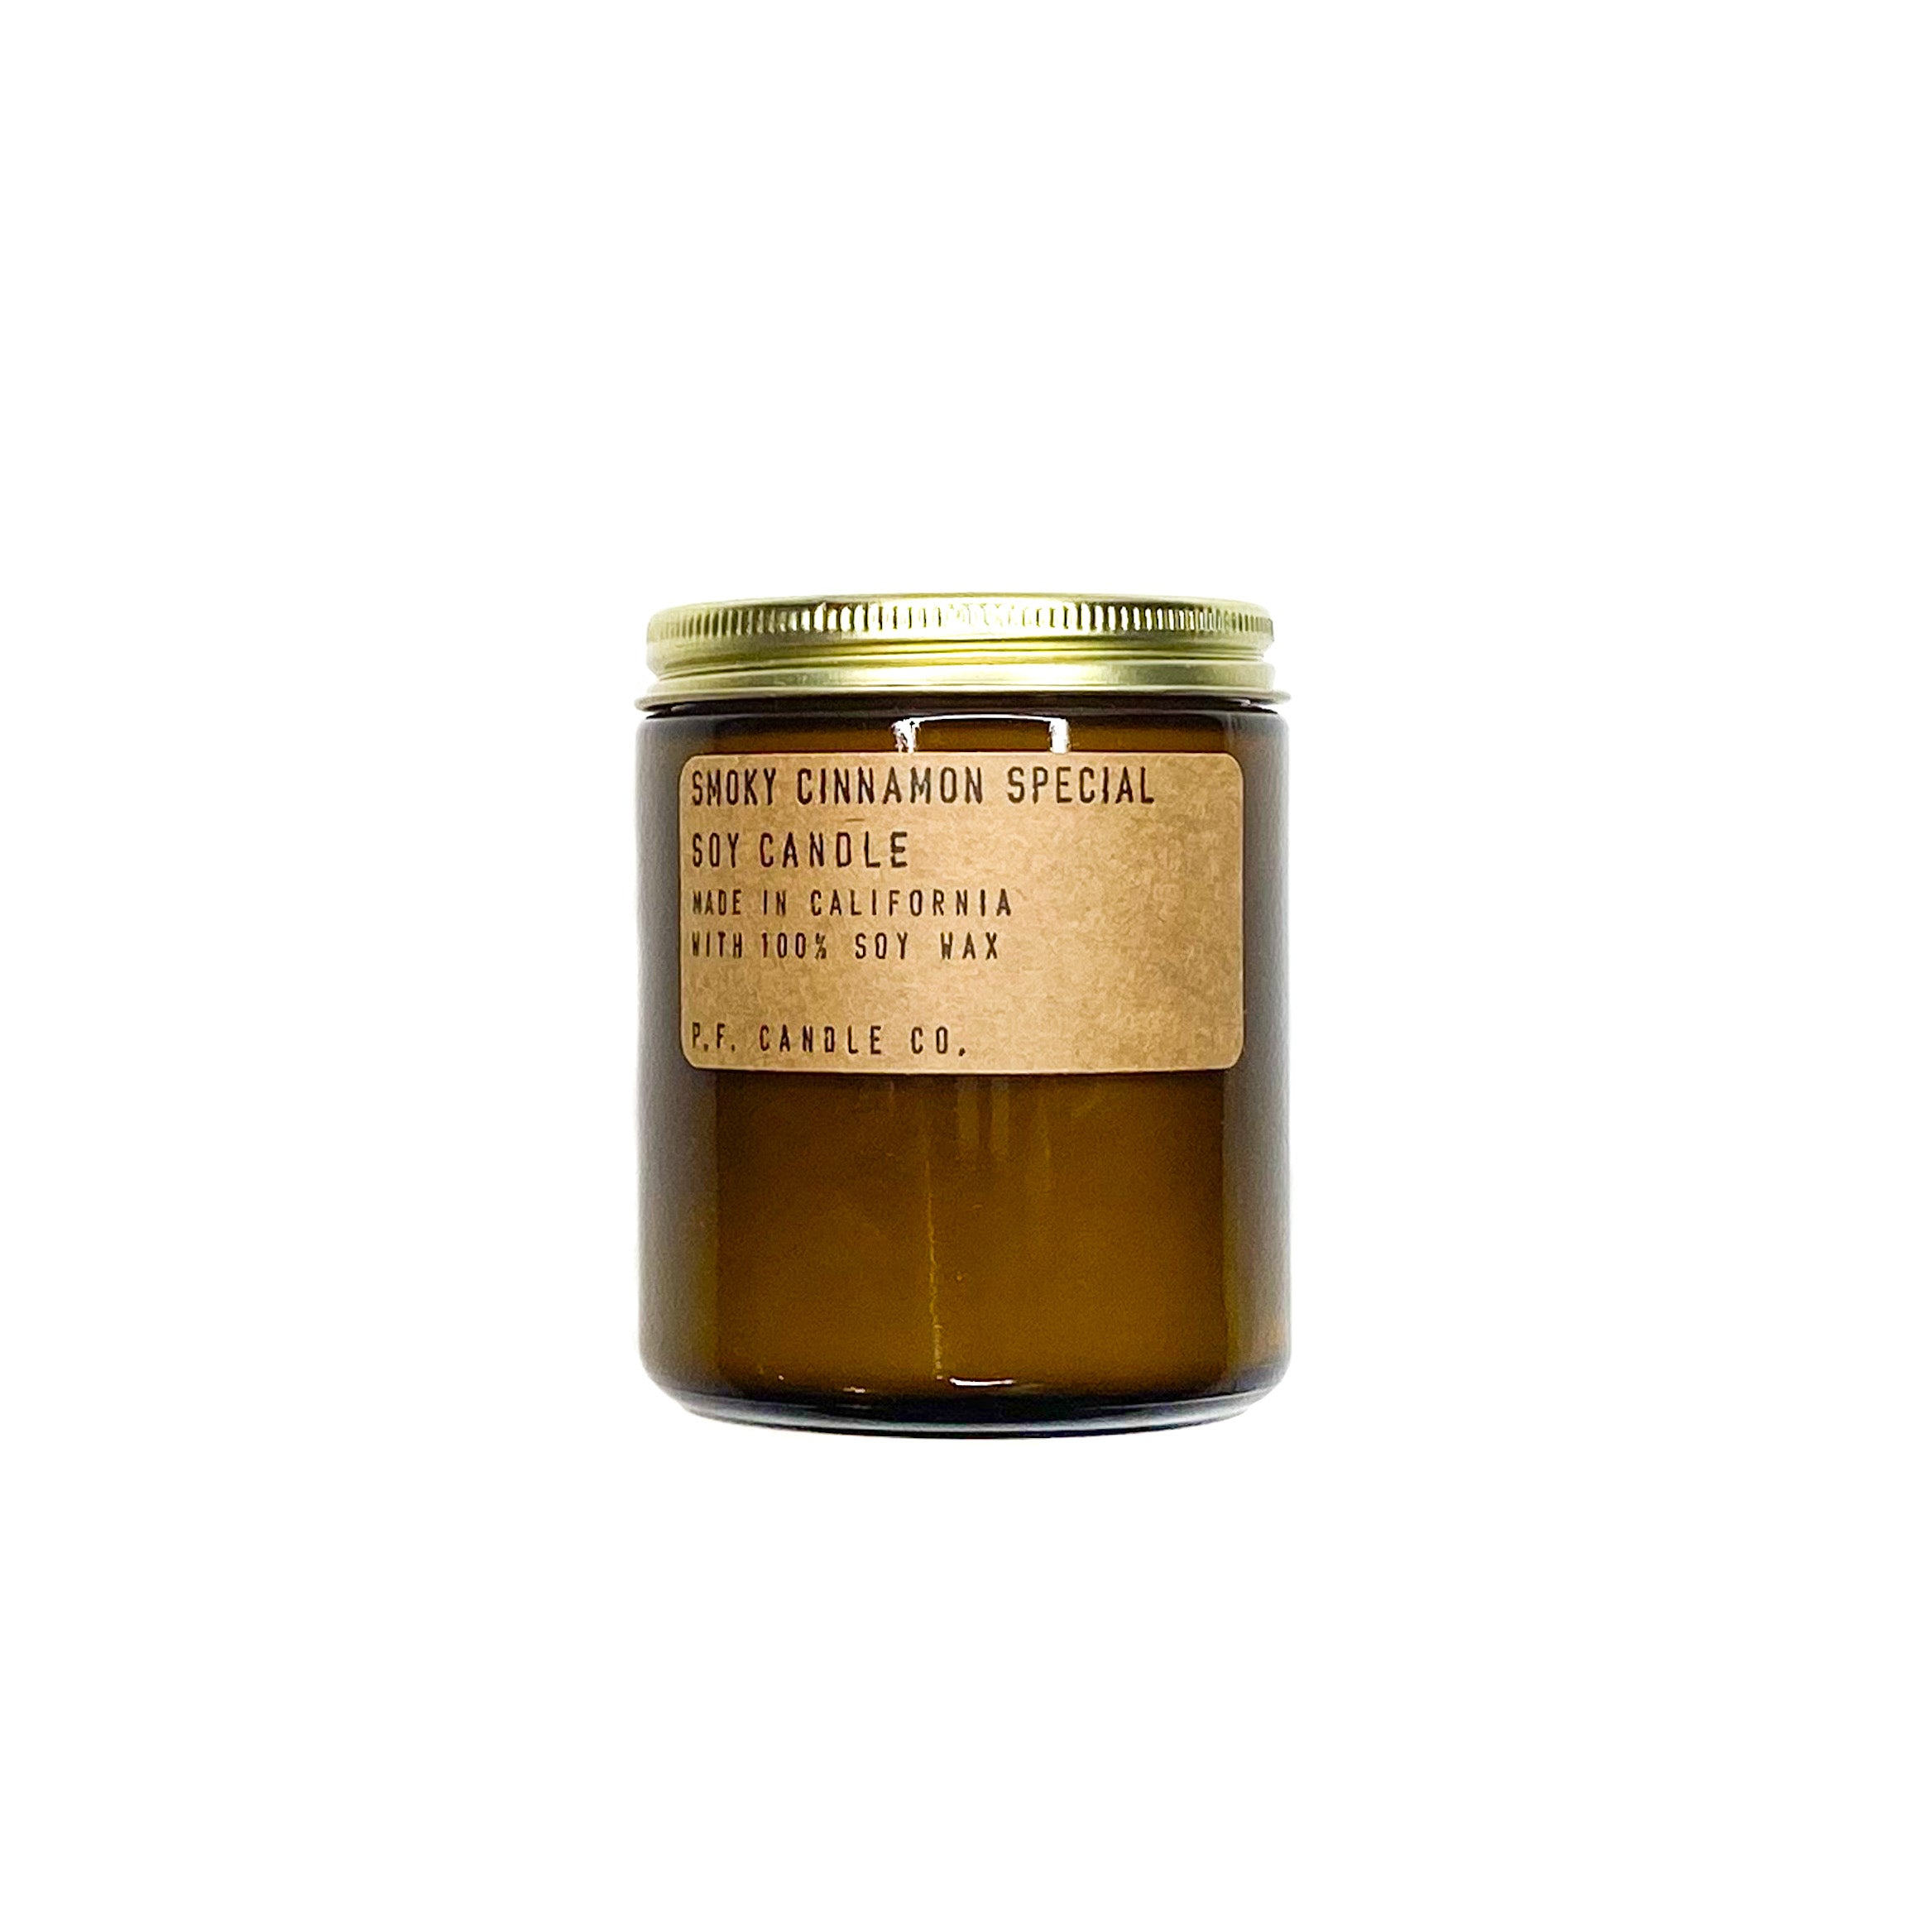 P.F. Candle Co. Smoky Cinnamon 7.2oz Soy Candle